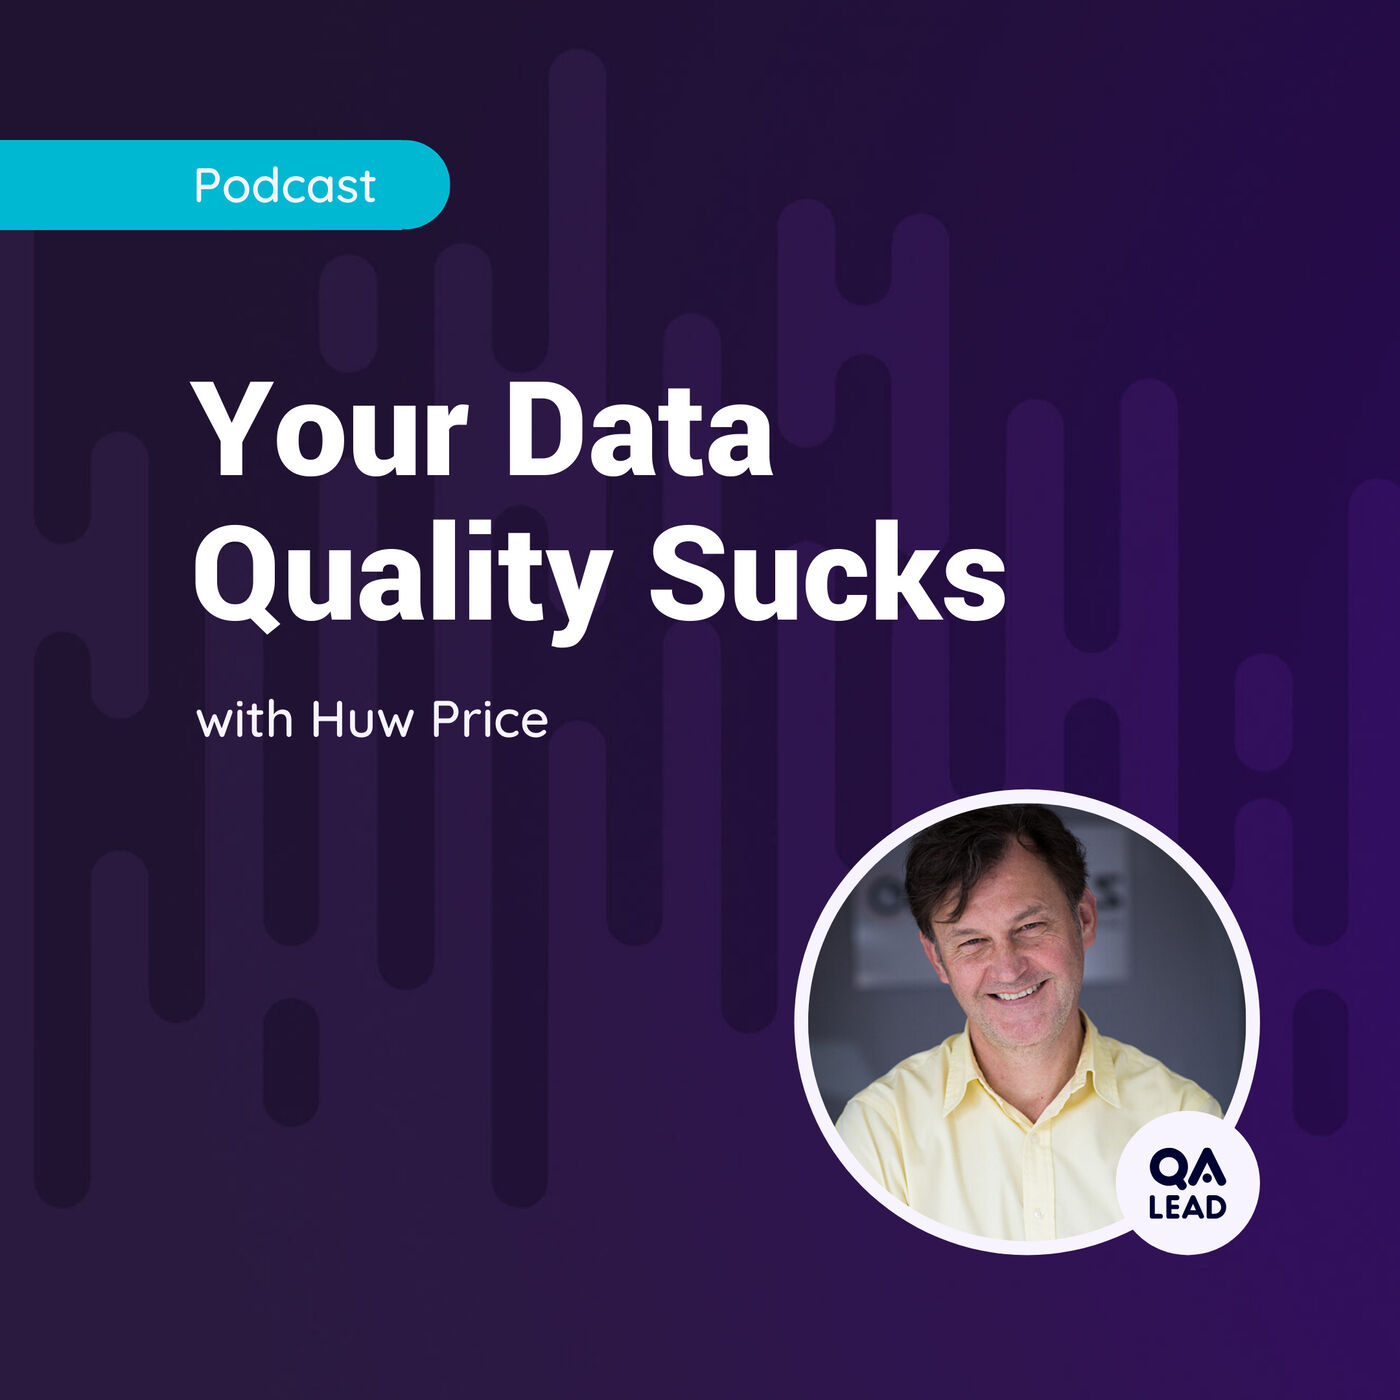 Your Data Quality Sucks (with Huw Price from Curiosity Software)